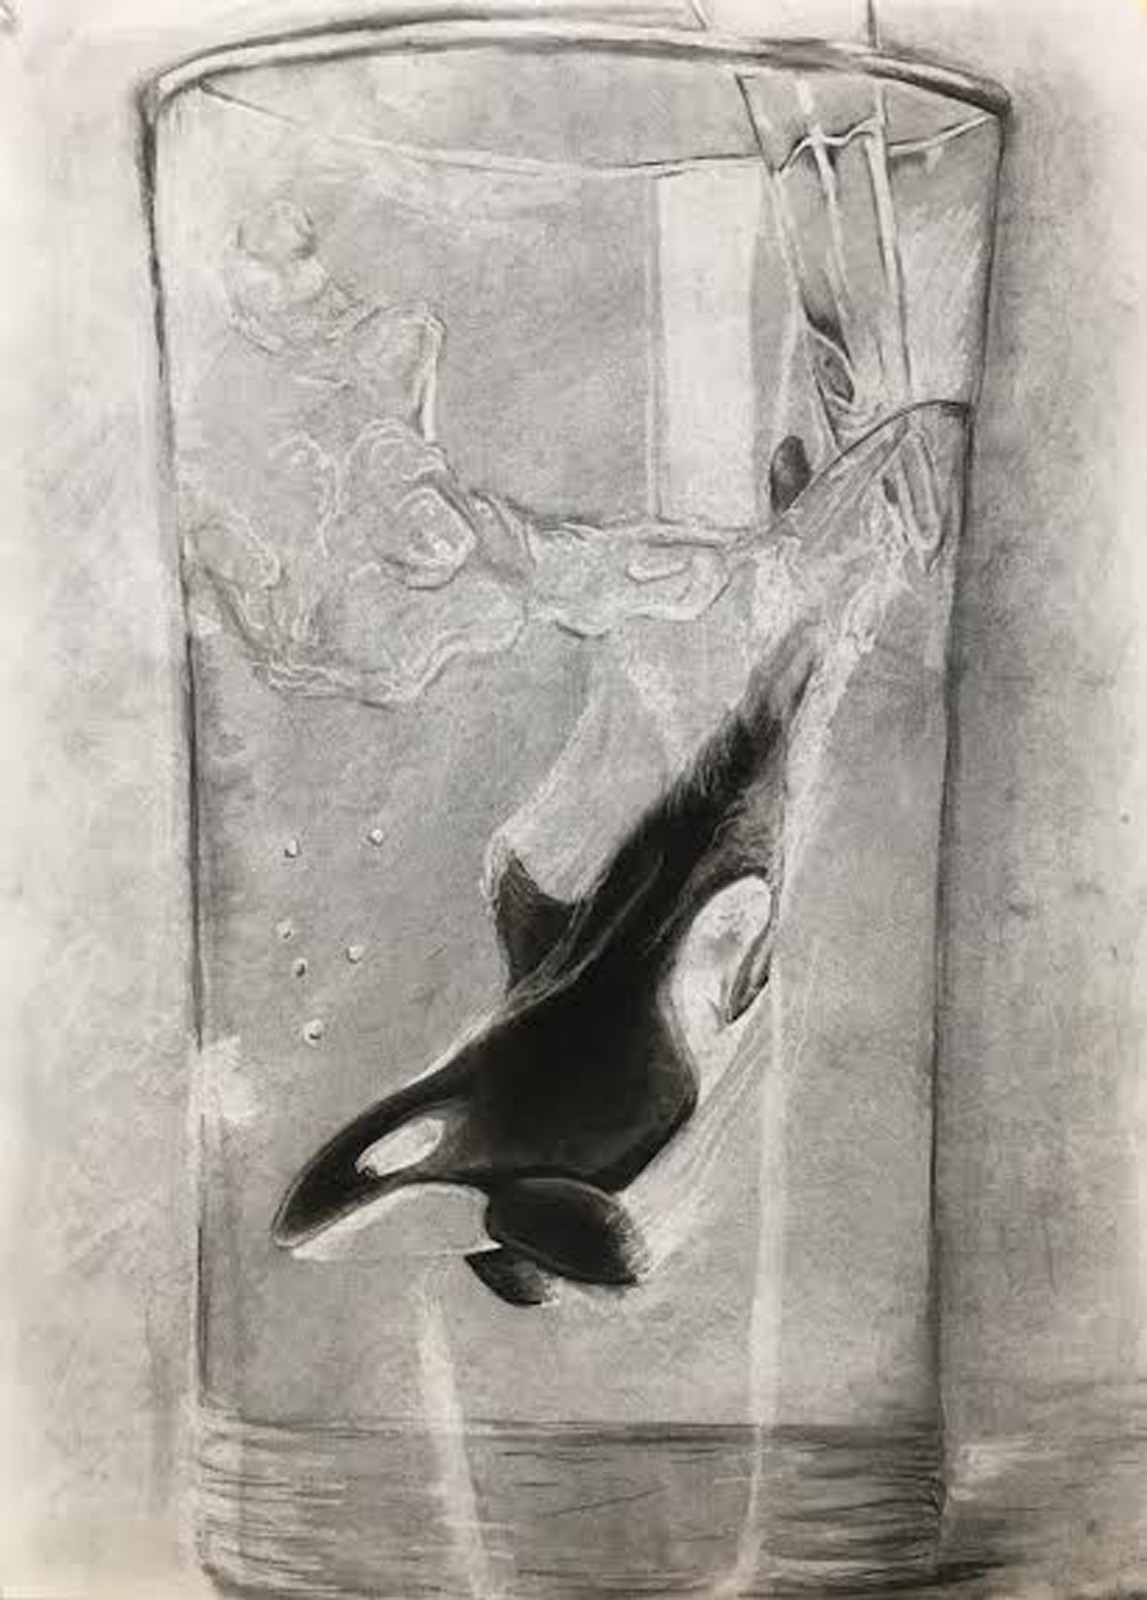 Charcoal drawing on an orca swimming in a glass of water